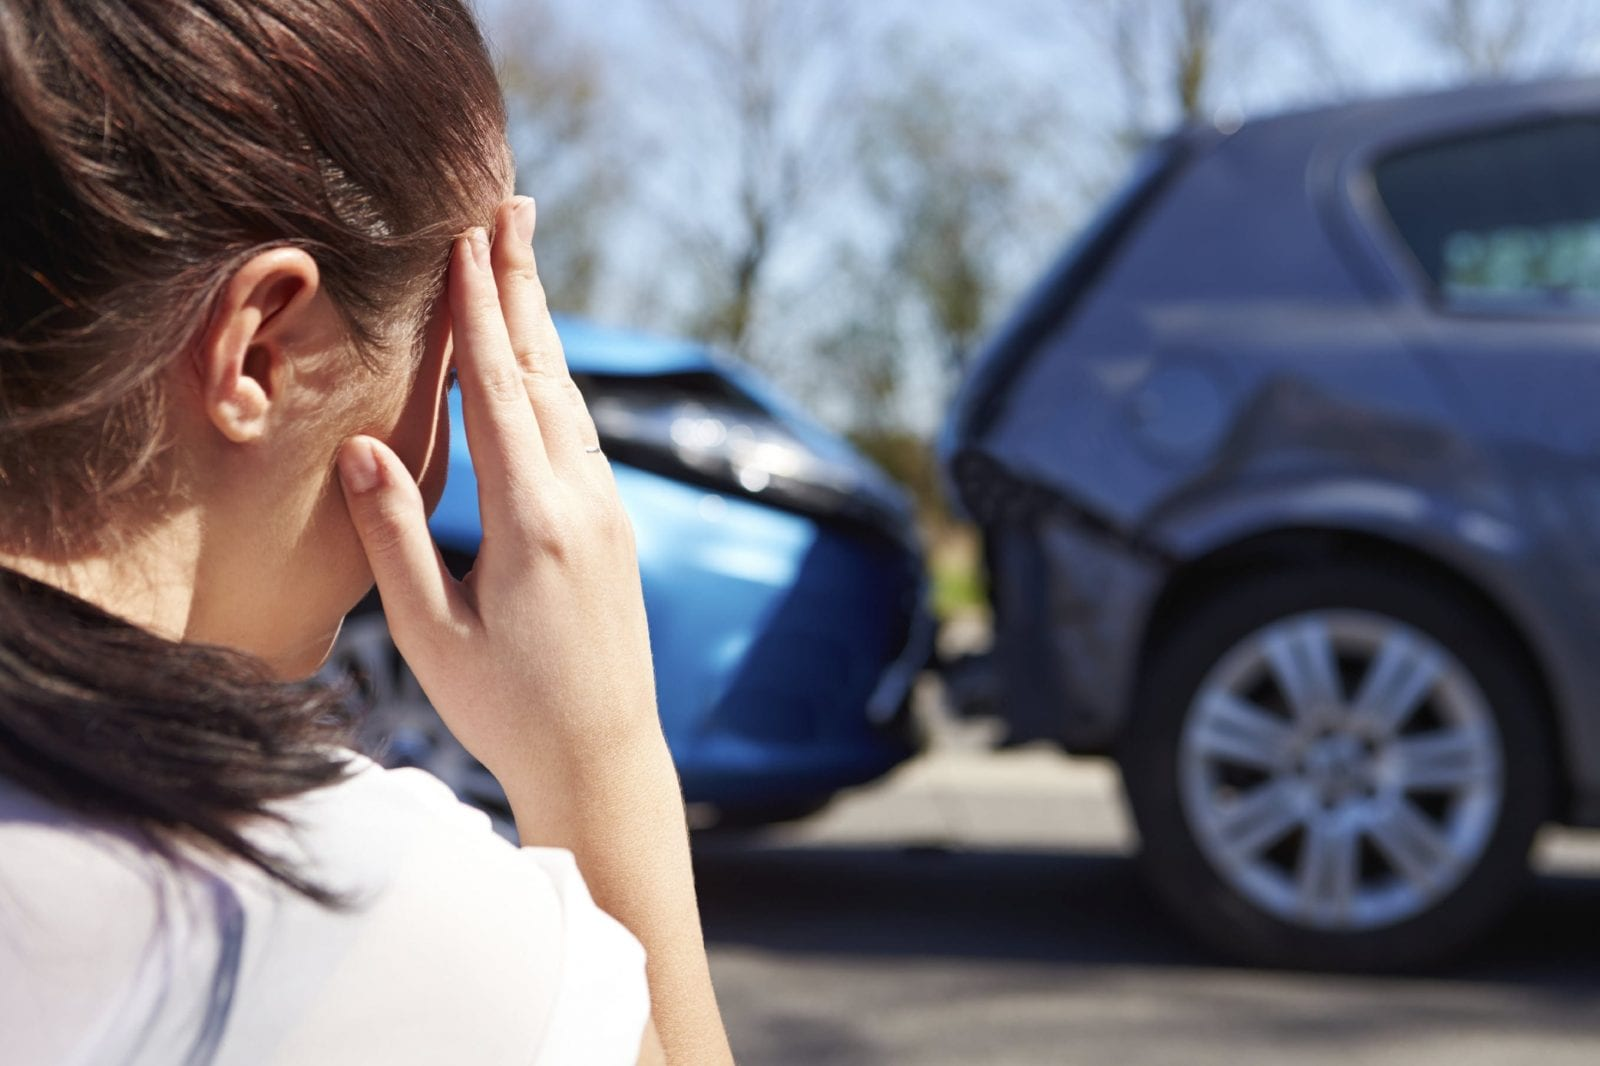 Woman Involved In Car Crash Stock Photo